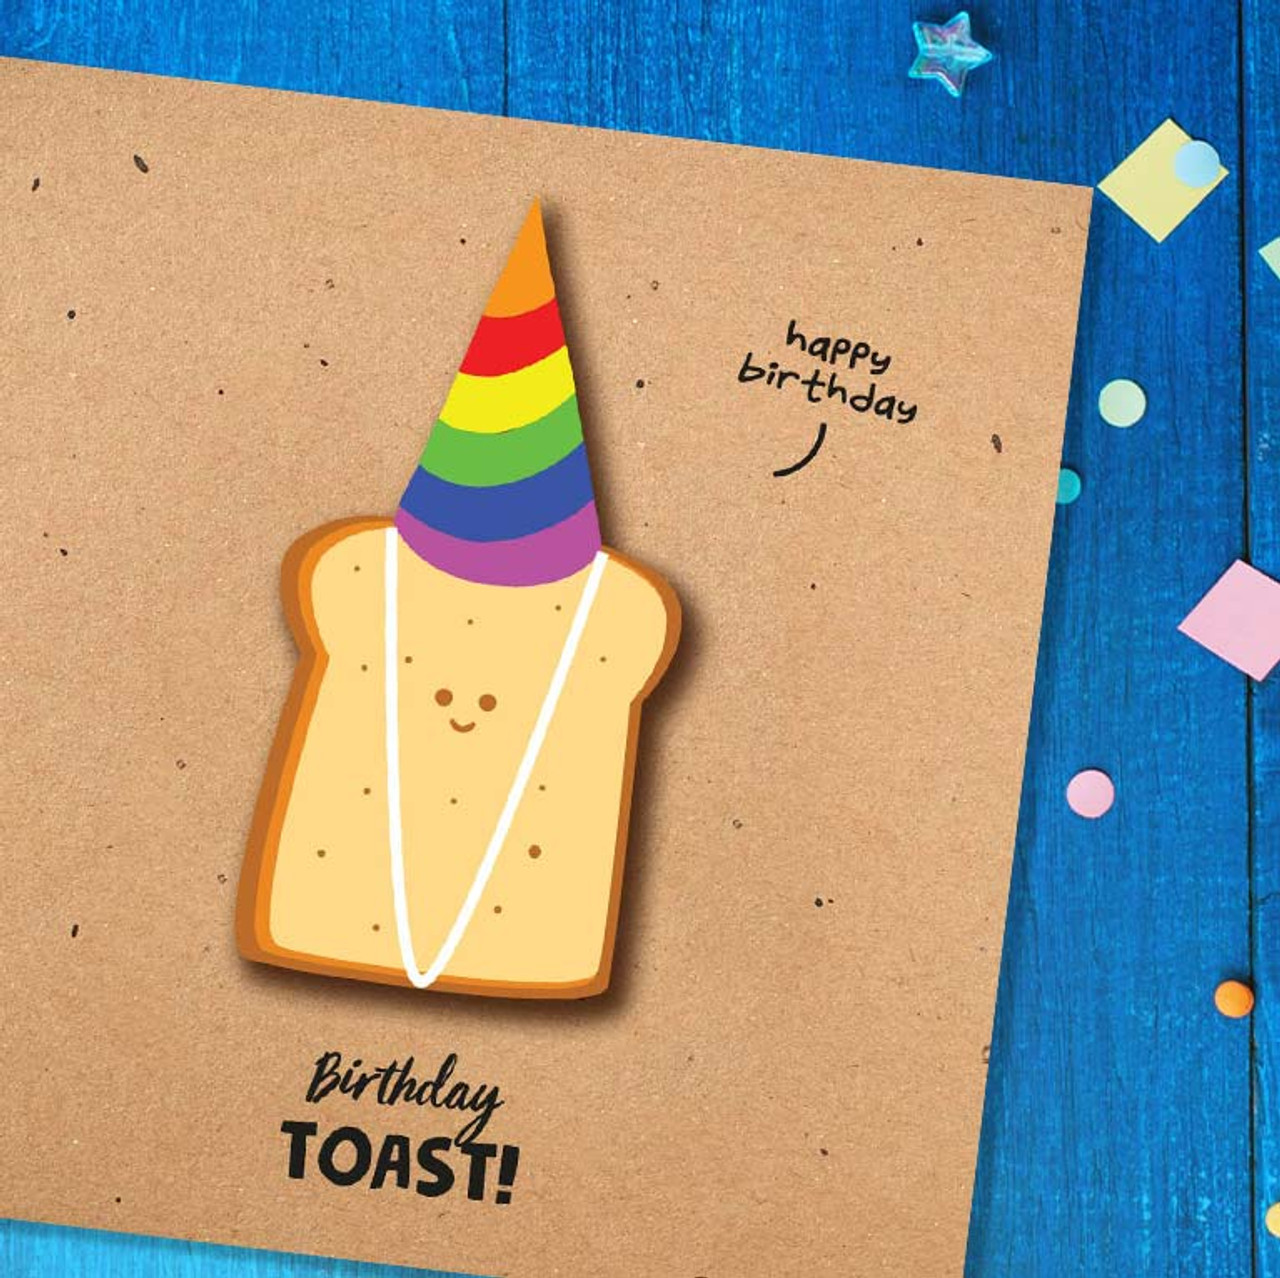 Party Hat Wearing Birthday Toast Greeting Card!